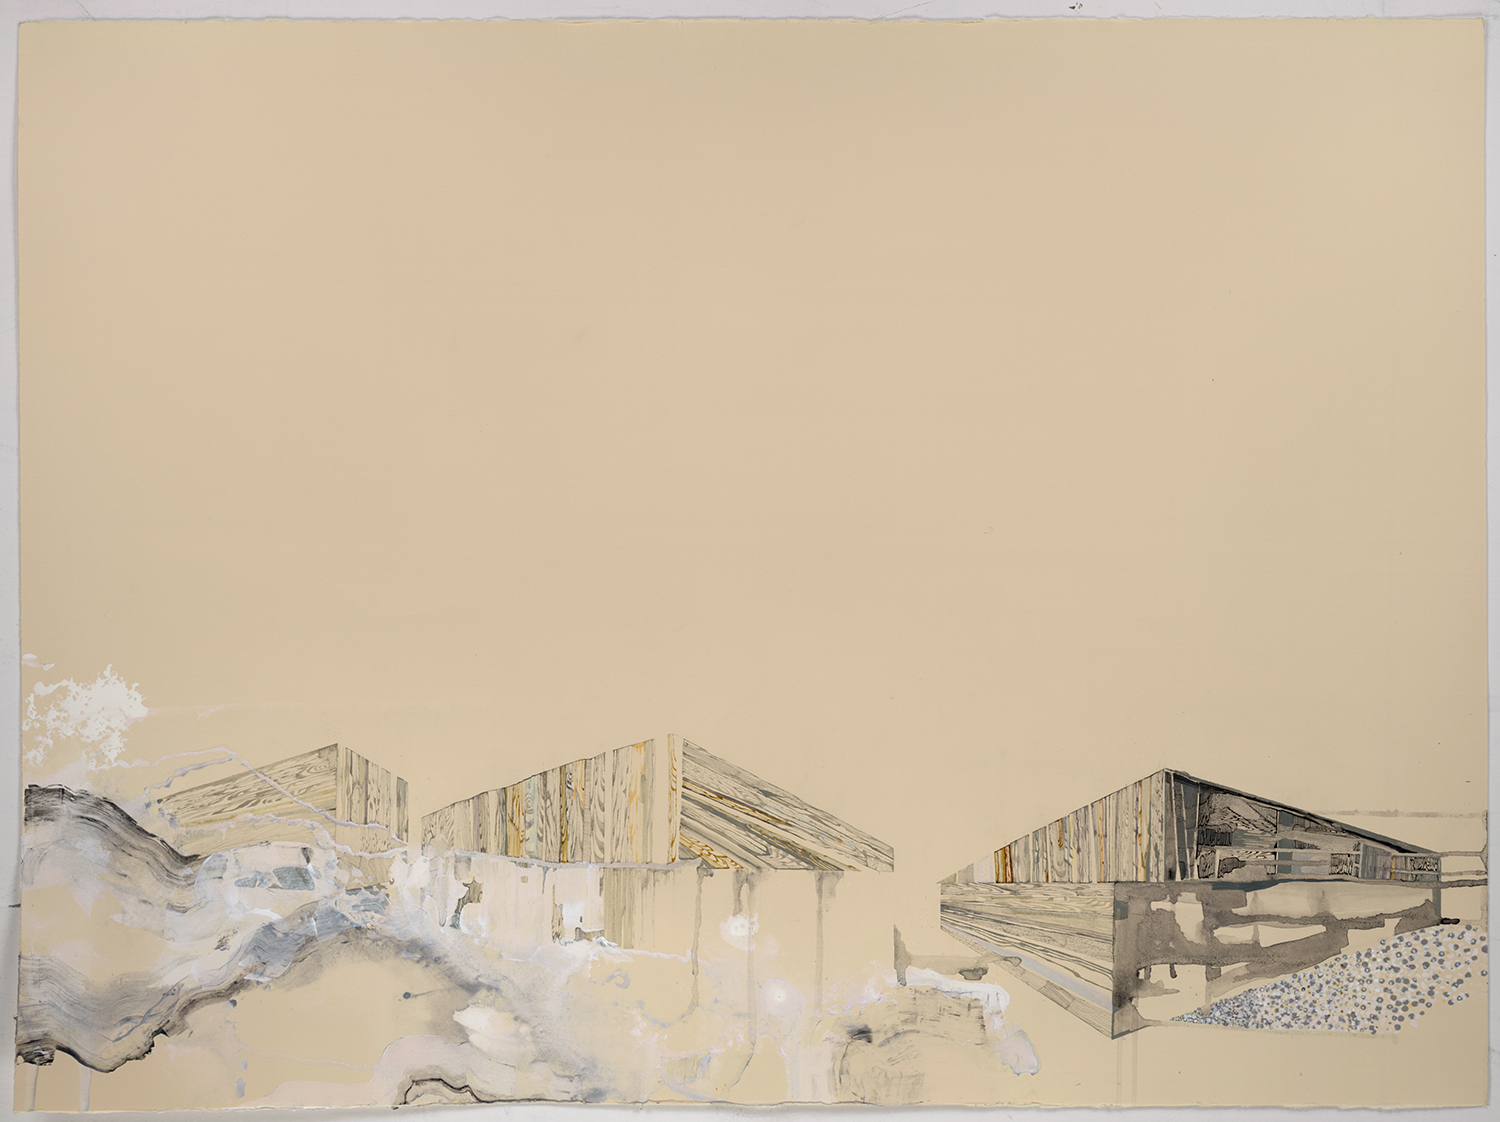 "Loving 3 (Oil driller camps) - 22""x 30"", ink, gouache, graphite on paper, 2012"